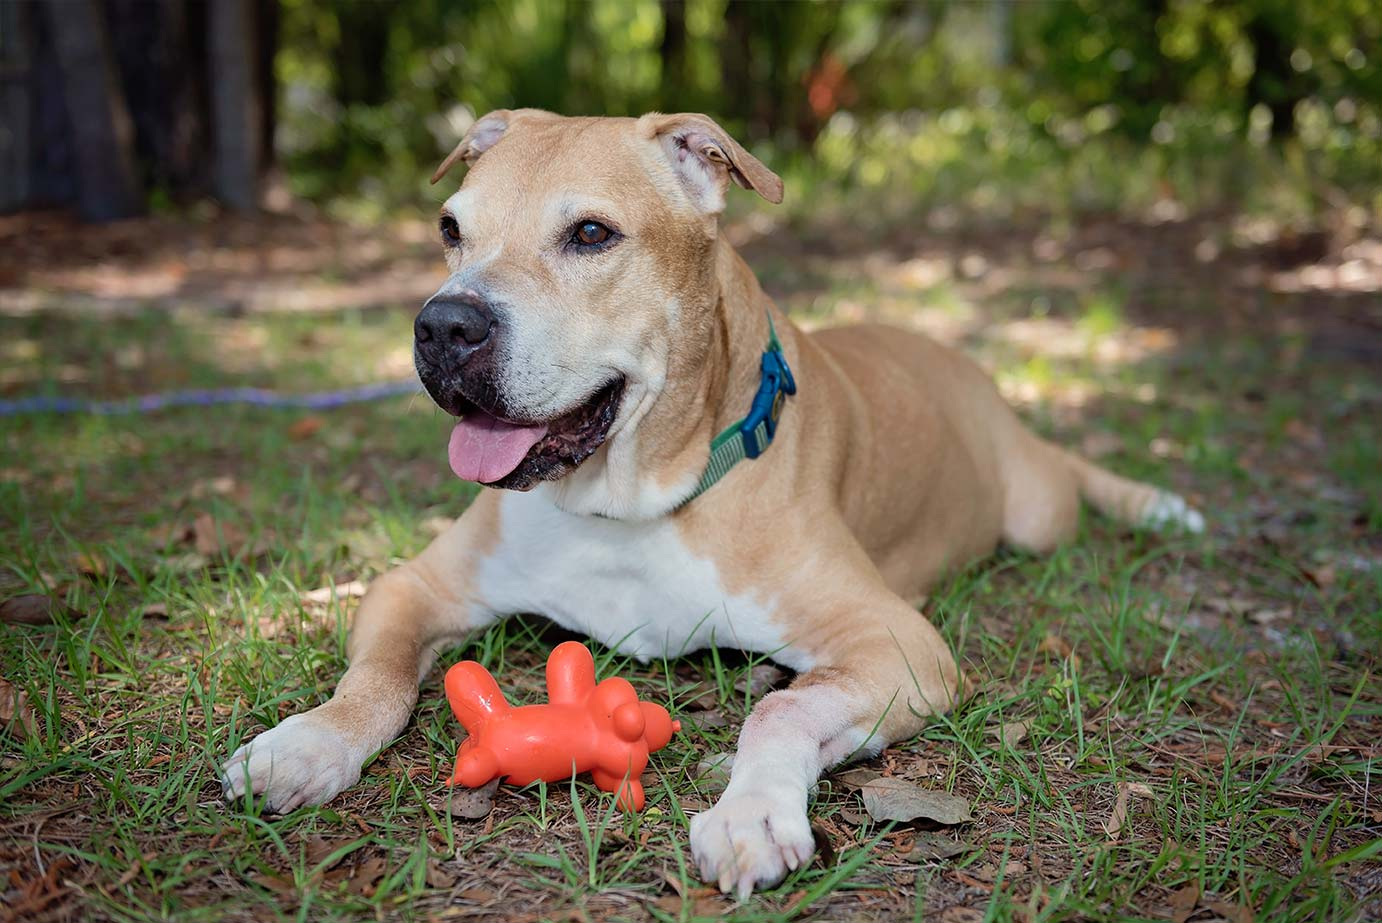 Smiling dog laying in grass with toy